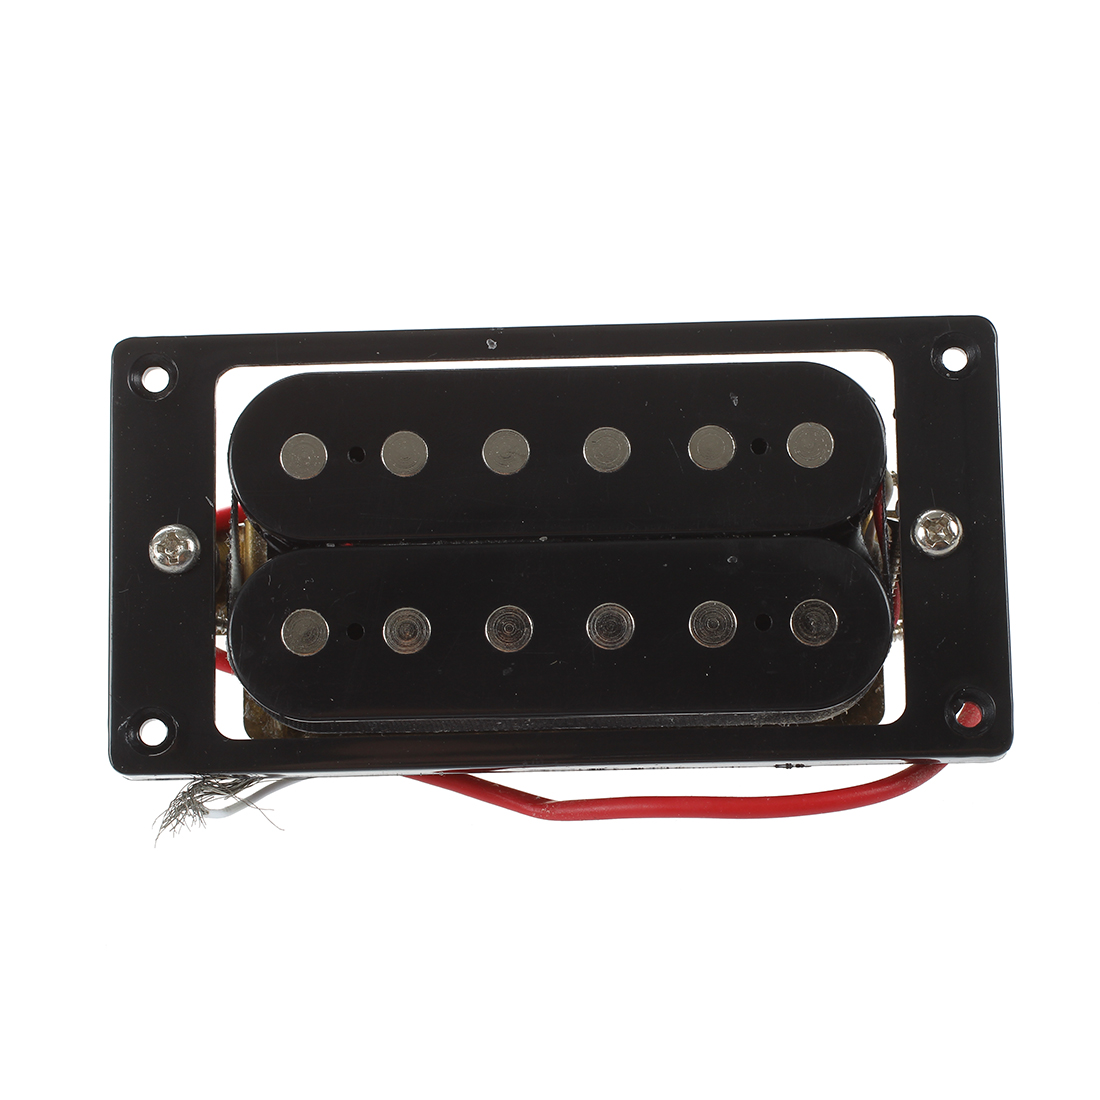 HOT 5X 2PCs(1 set)Black Humbucker Double Coil Electric Guitar Pickups + Frame Screw kmise electric guitar pickups humbucker double coil pickup bridge neck set guitar parts accessories black with chrome gold frame